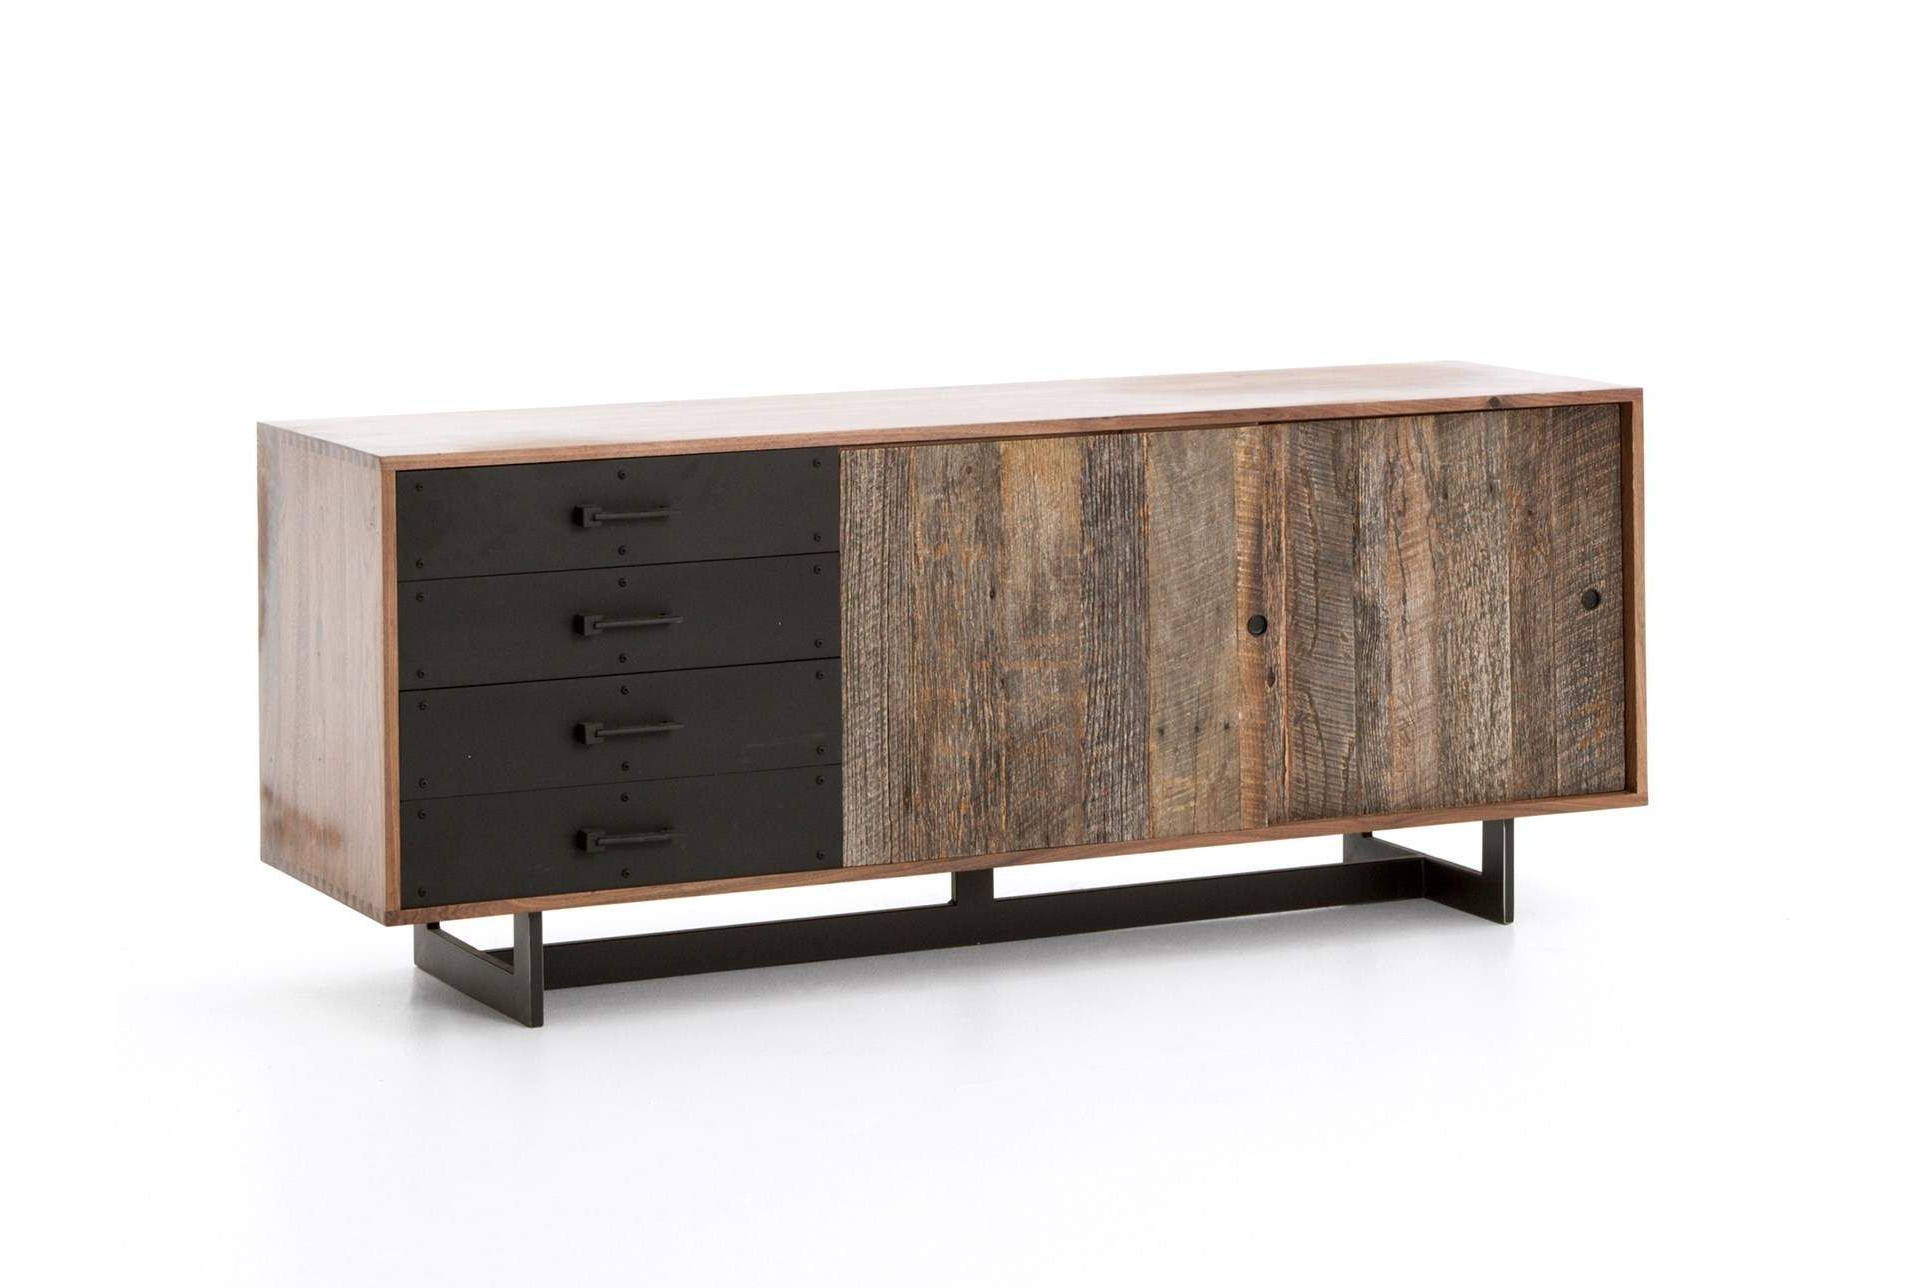 Mikelson Media Console Tables Intended For Current Shop For Mikelson Sideboard At Livingspaces. Enjoy Free Store (Gallery 2 of 20)